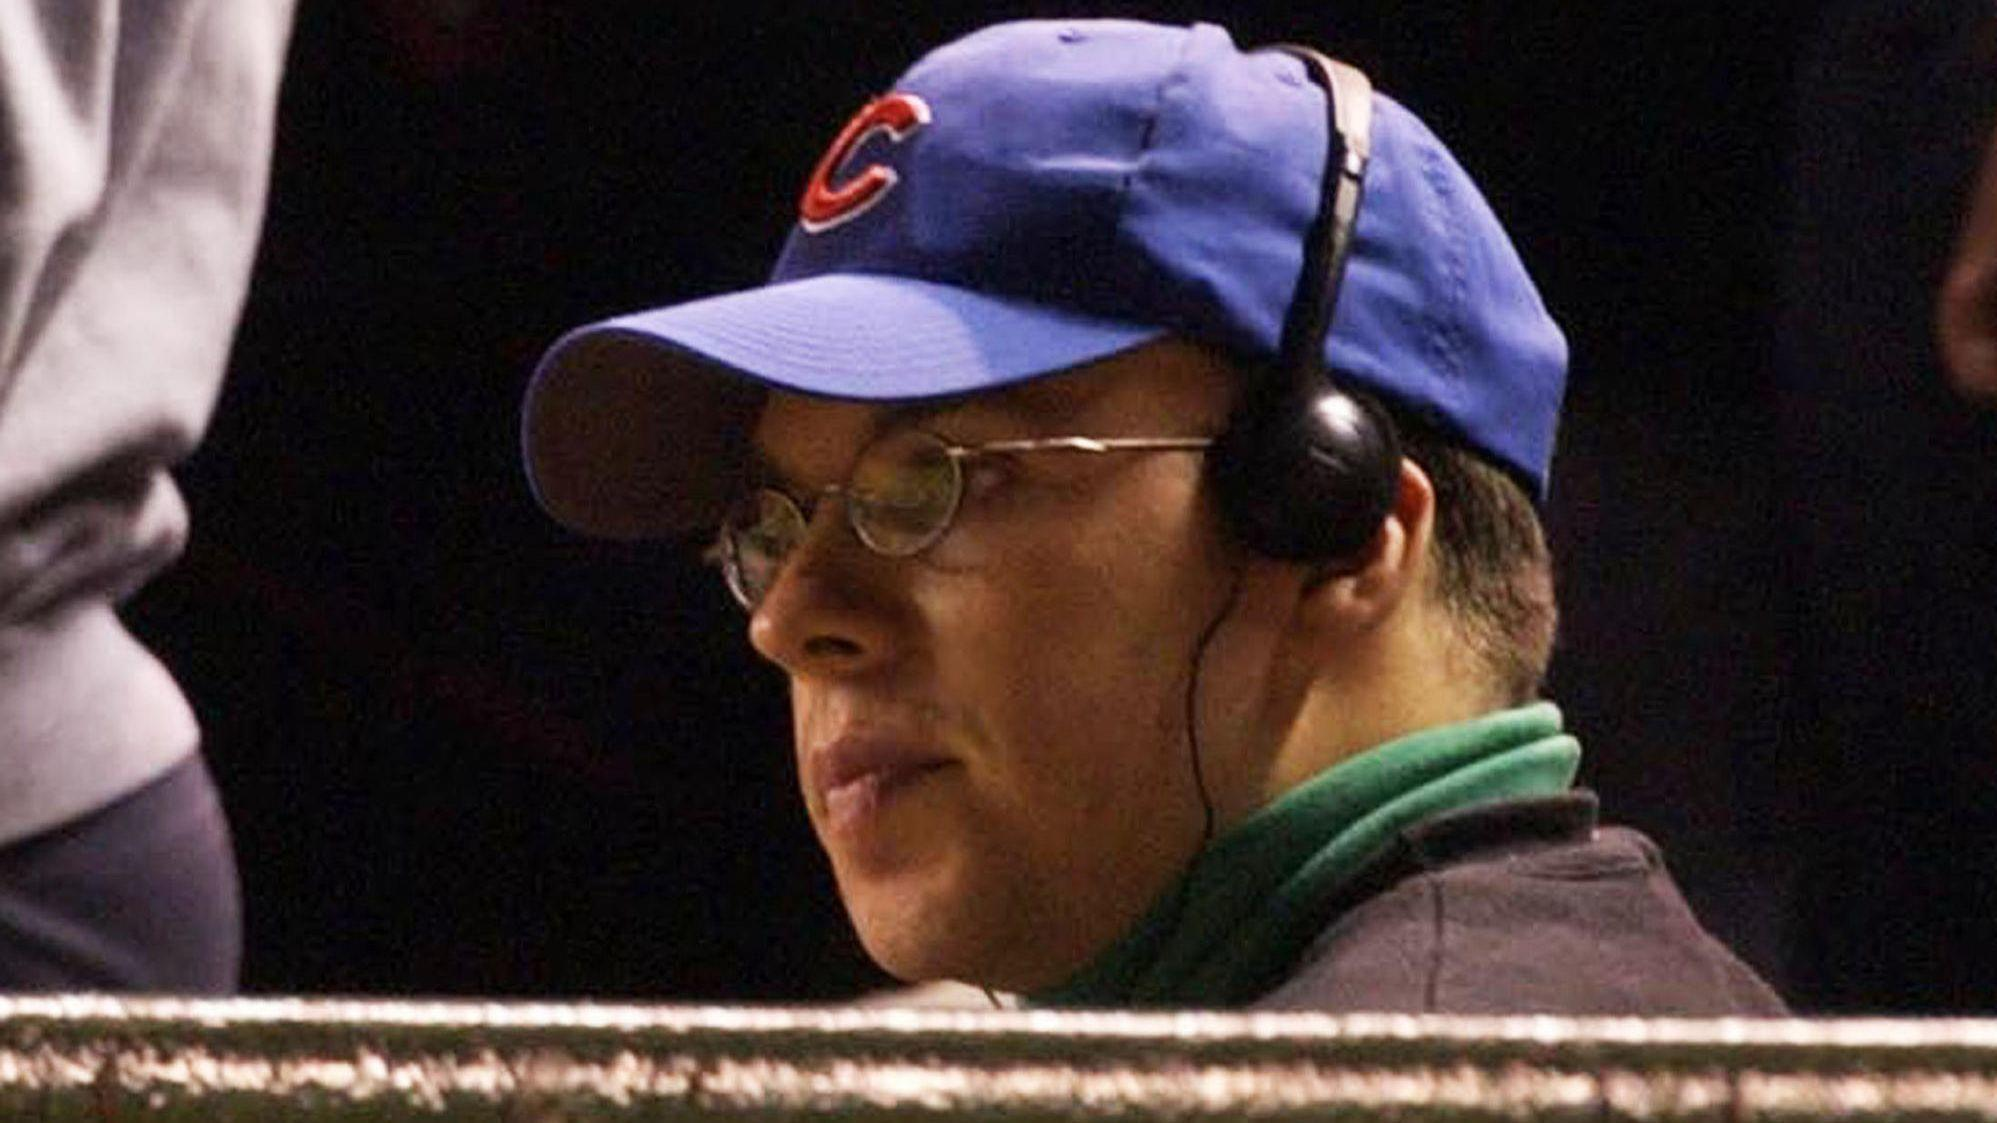 7 Things To Know About The Steve Bartman Game 15 Years Later